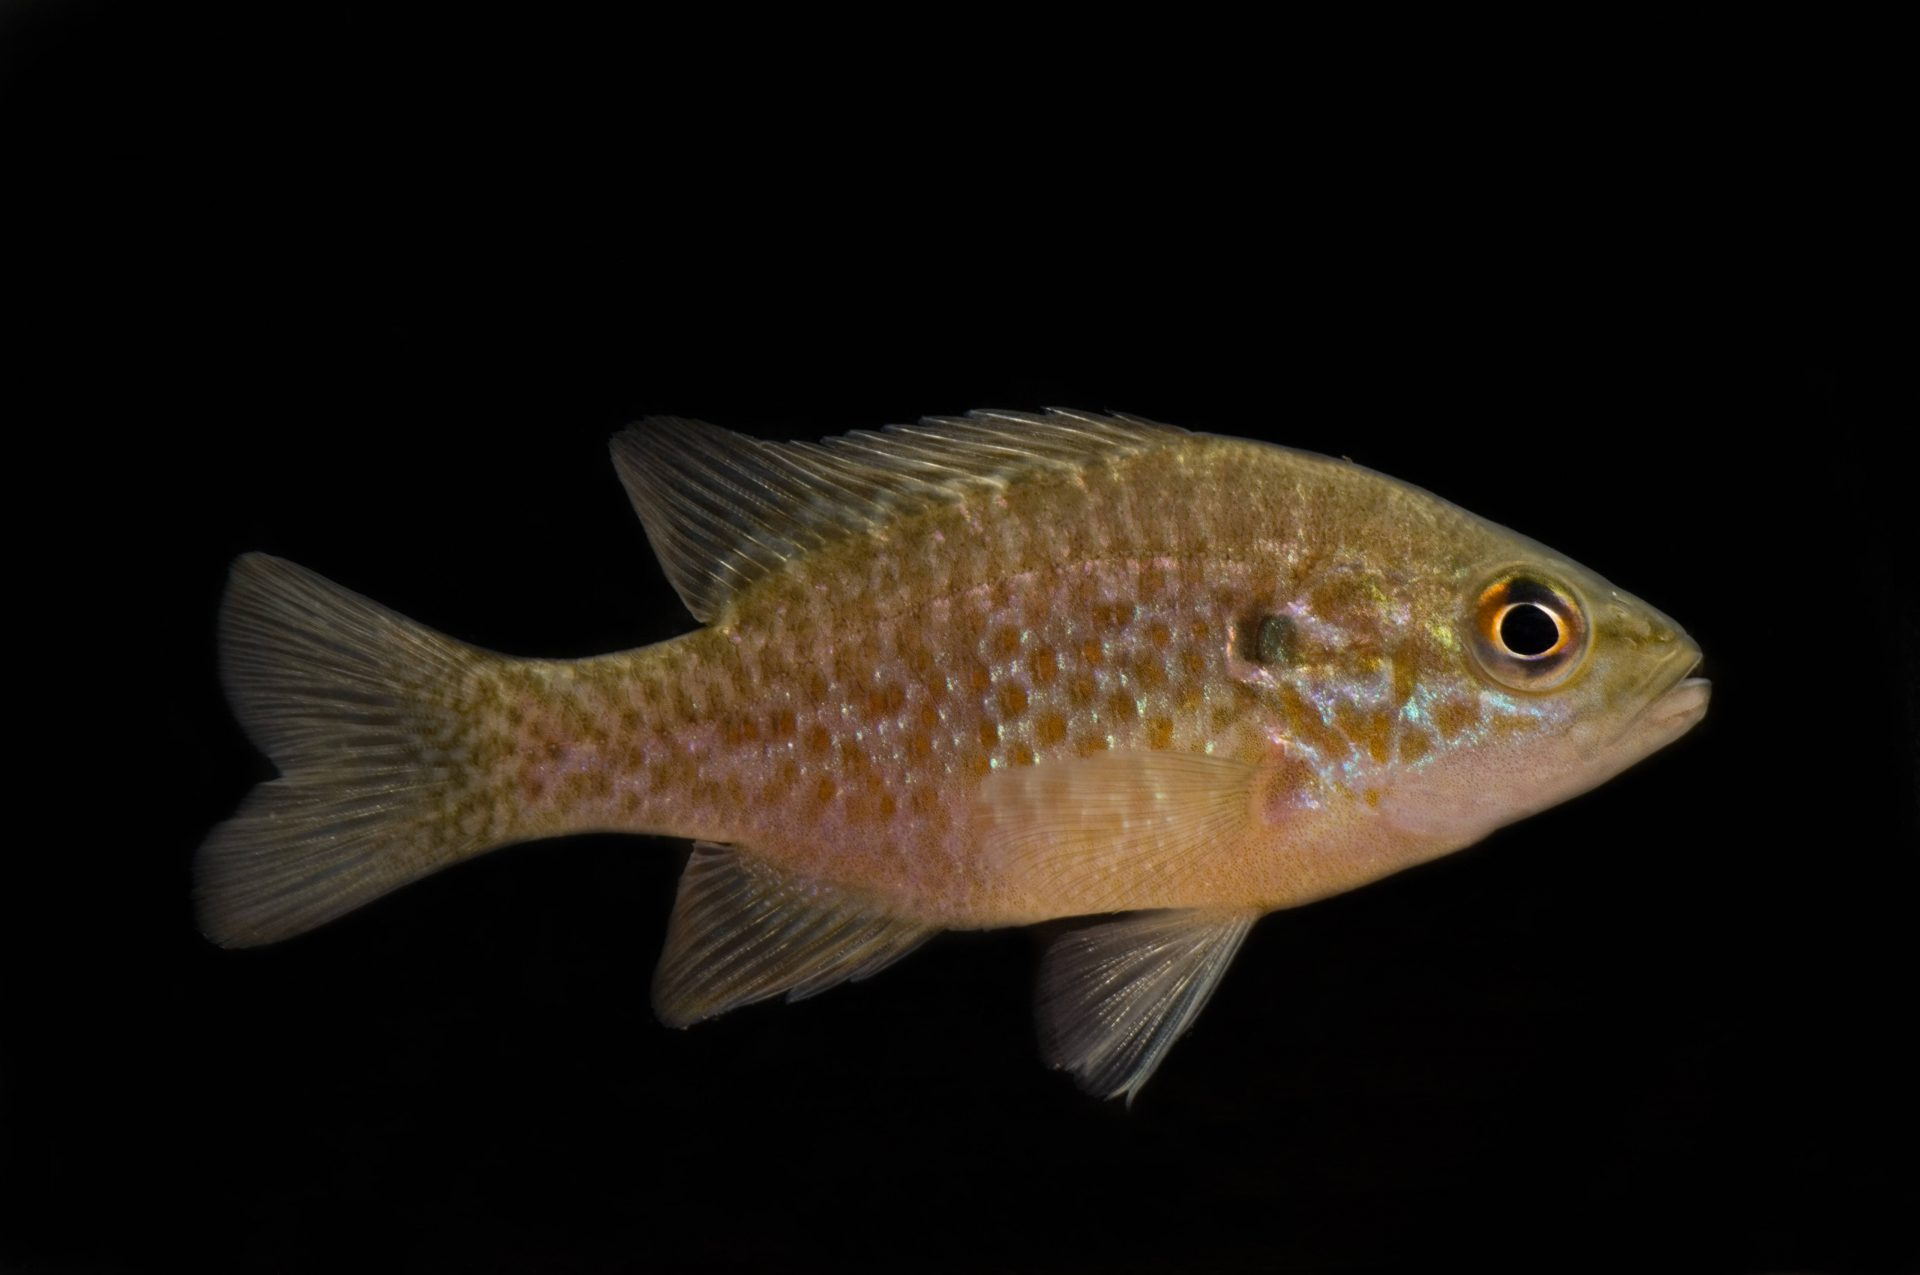 Photo: An orangespotted sunfish (Lepomis humilis) at the Gavins Point National Fish Hatchery, Yankton, South Dakota.